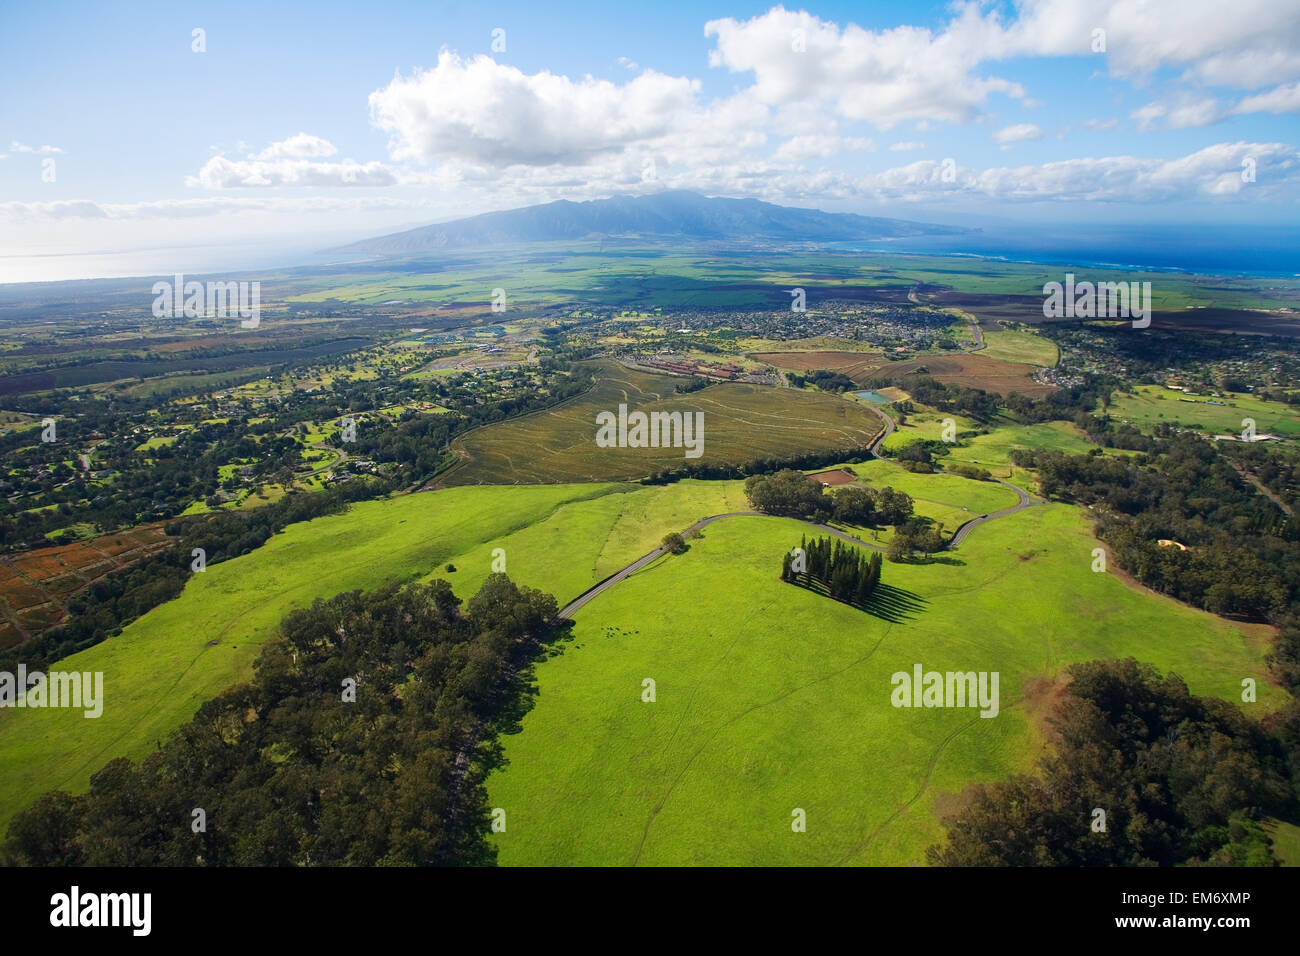 Hawaii. USA, aerial view; Maui, Scenic landscape of meadows of Haleakala Ranch and West Maui Mountains - Stock Image